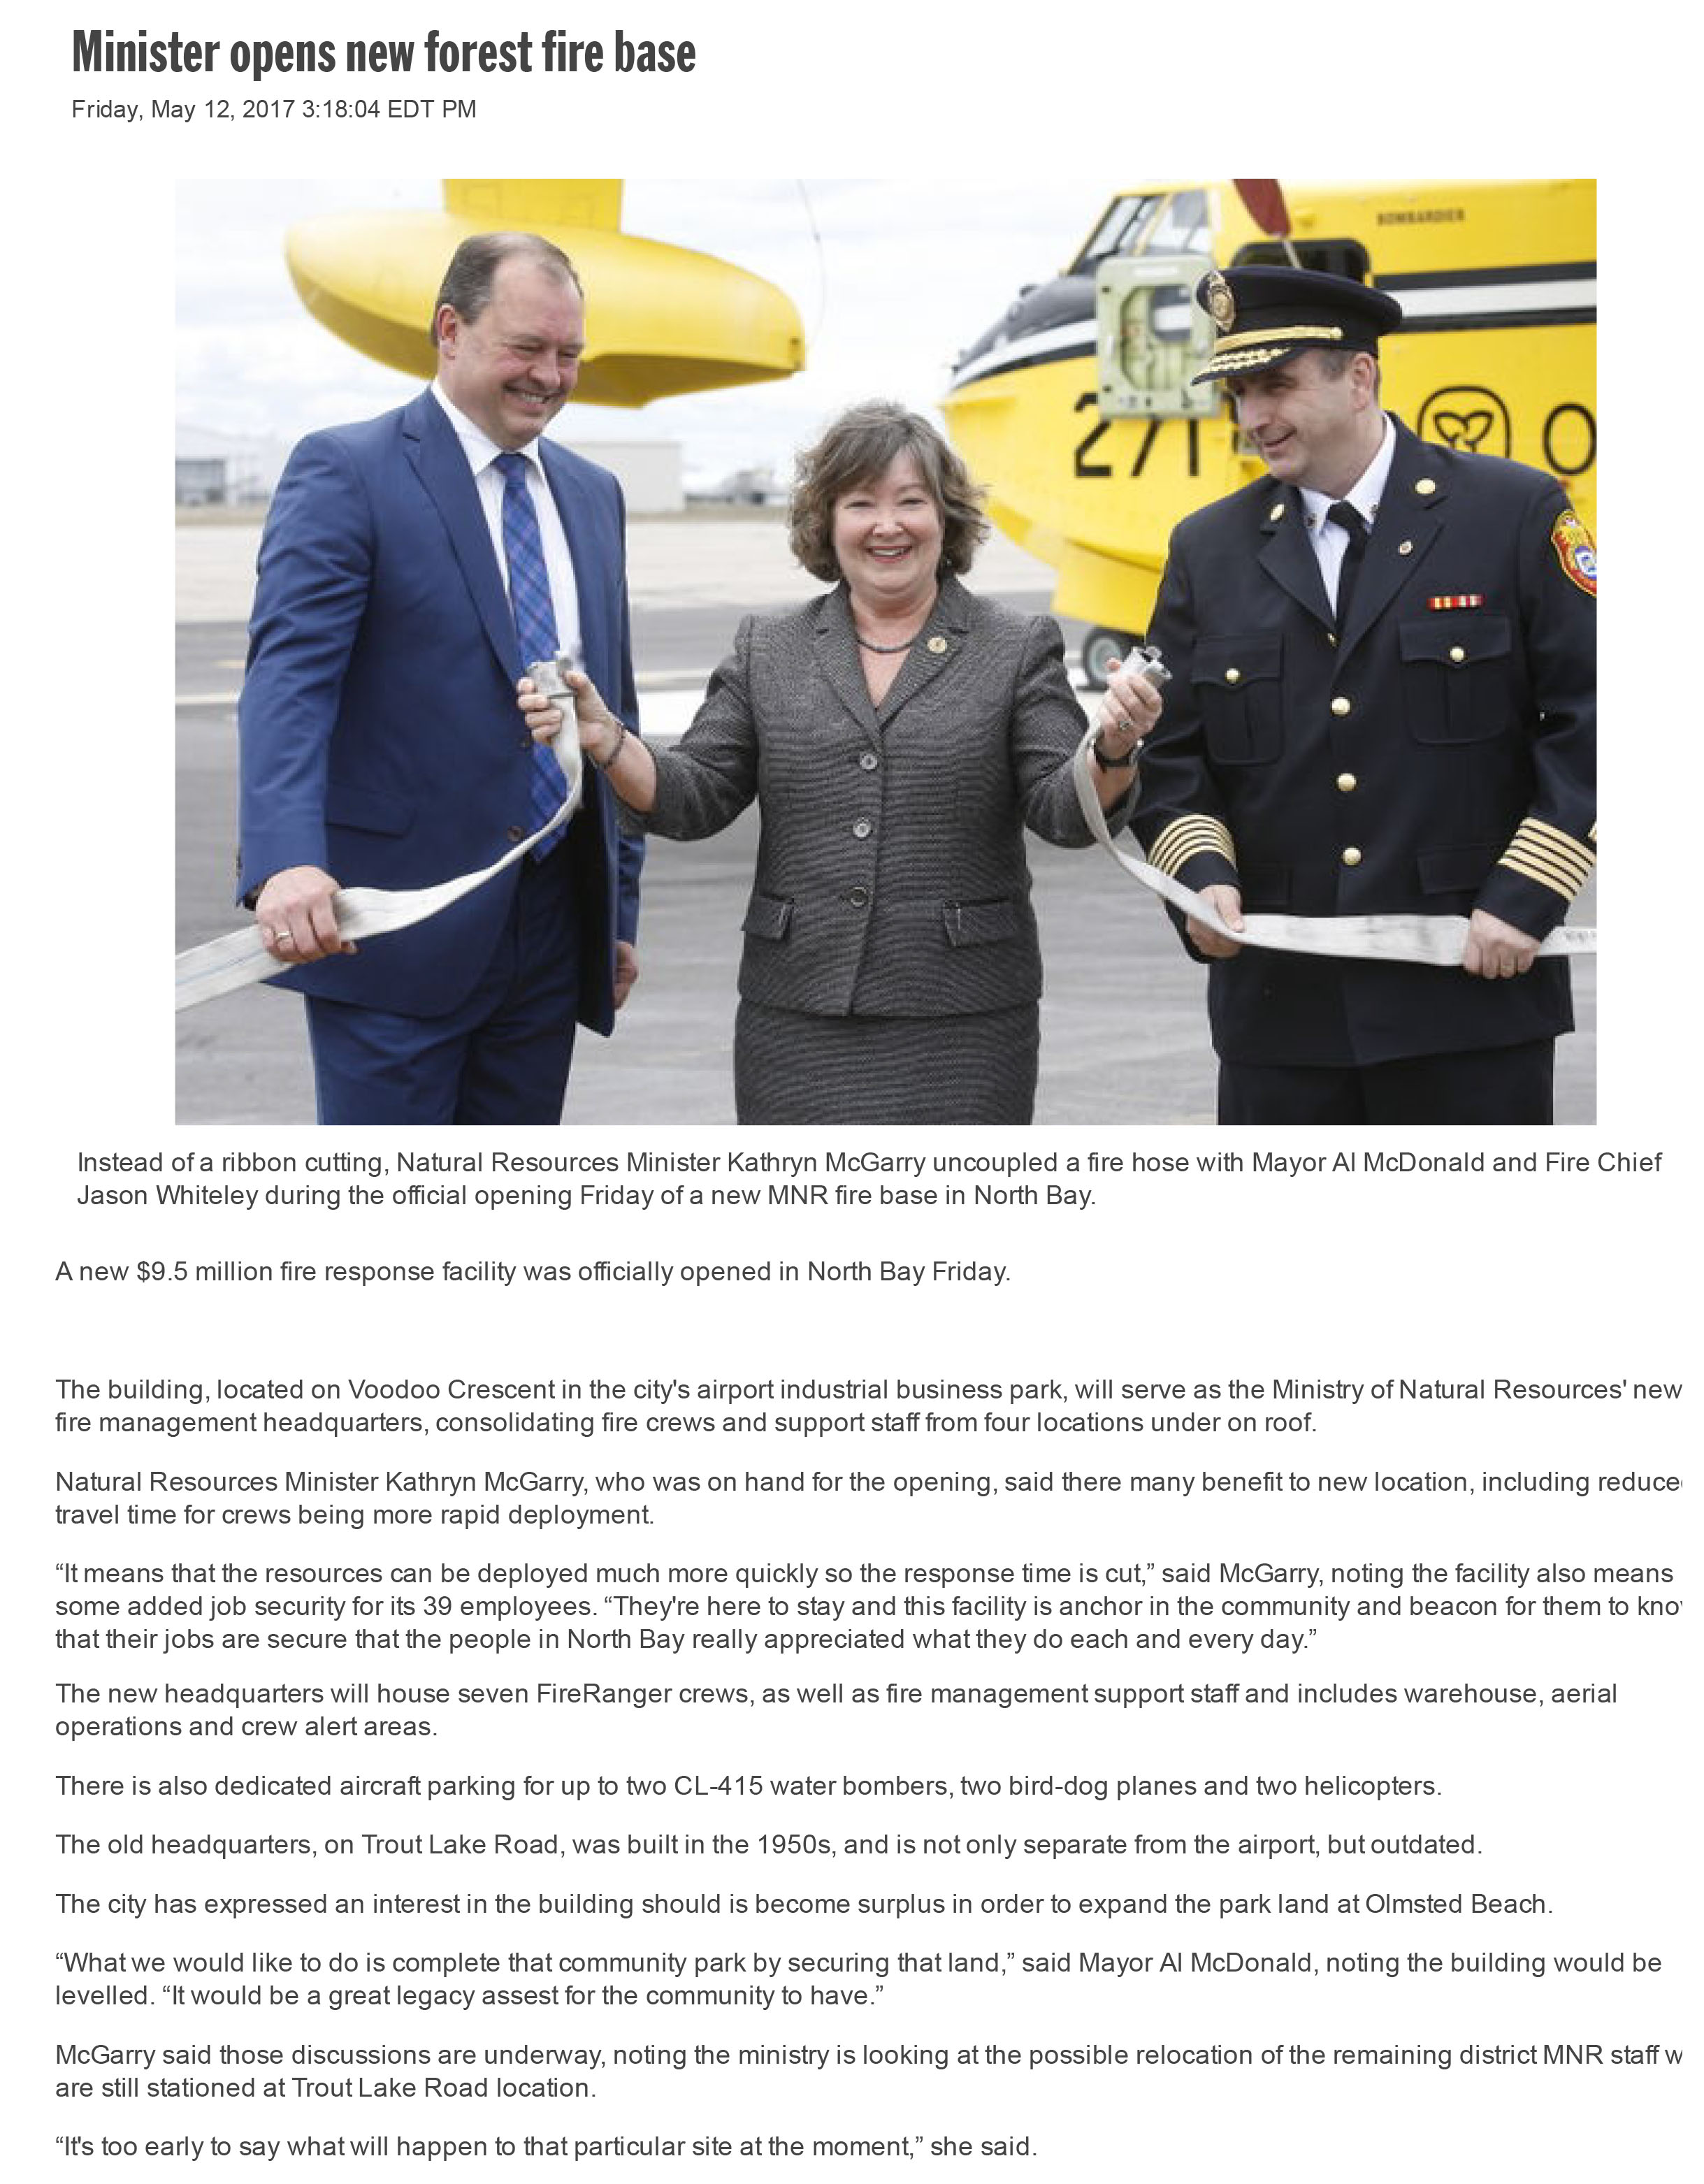 Minister opens new forest fire base _ North Bay Nugget-1.jpg